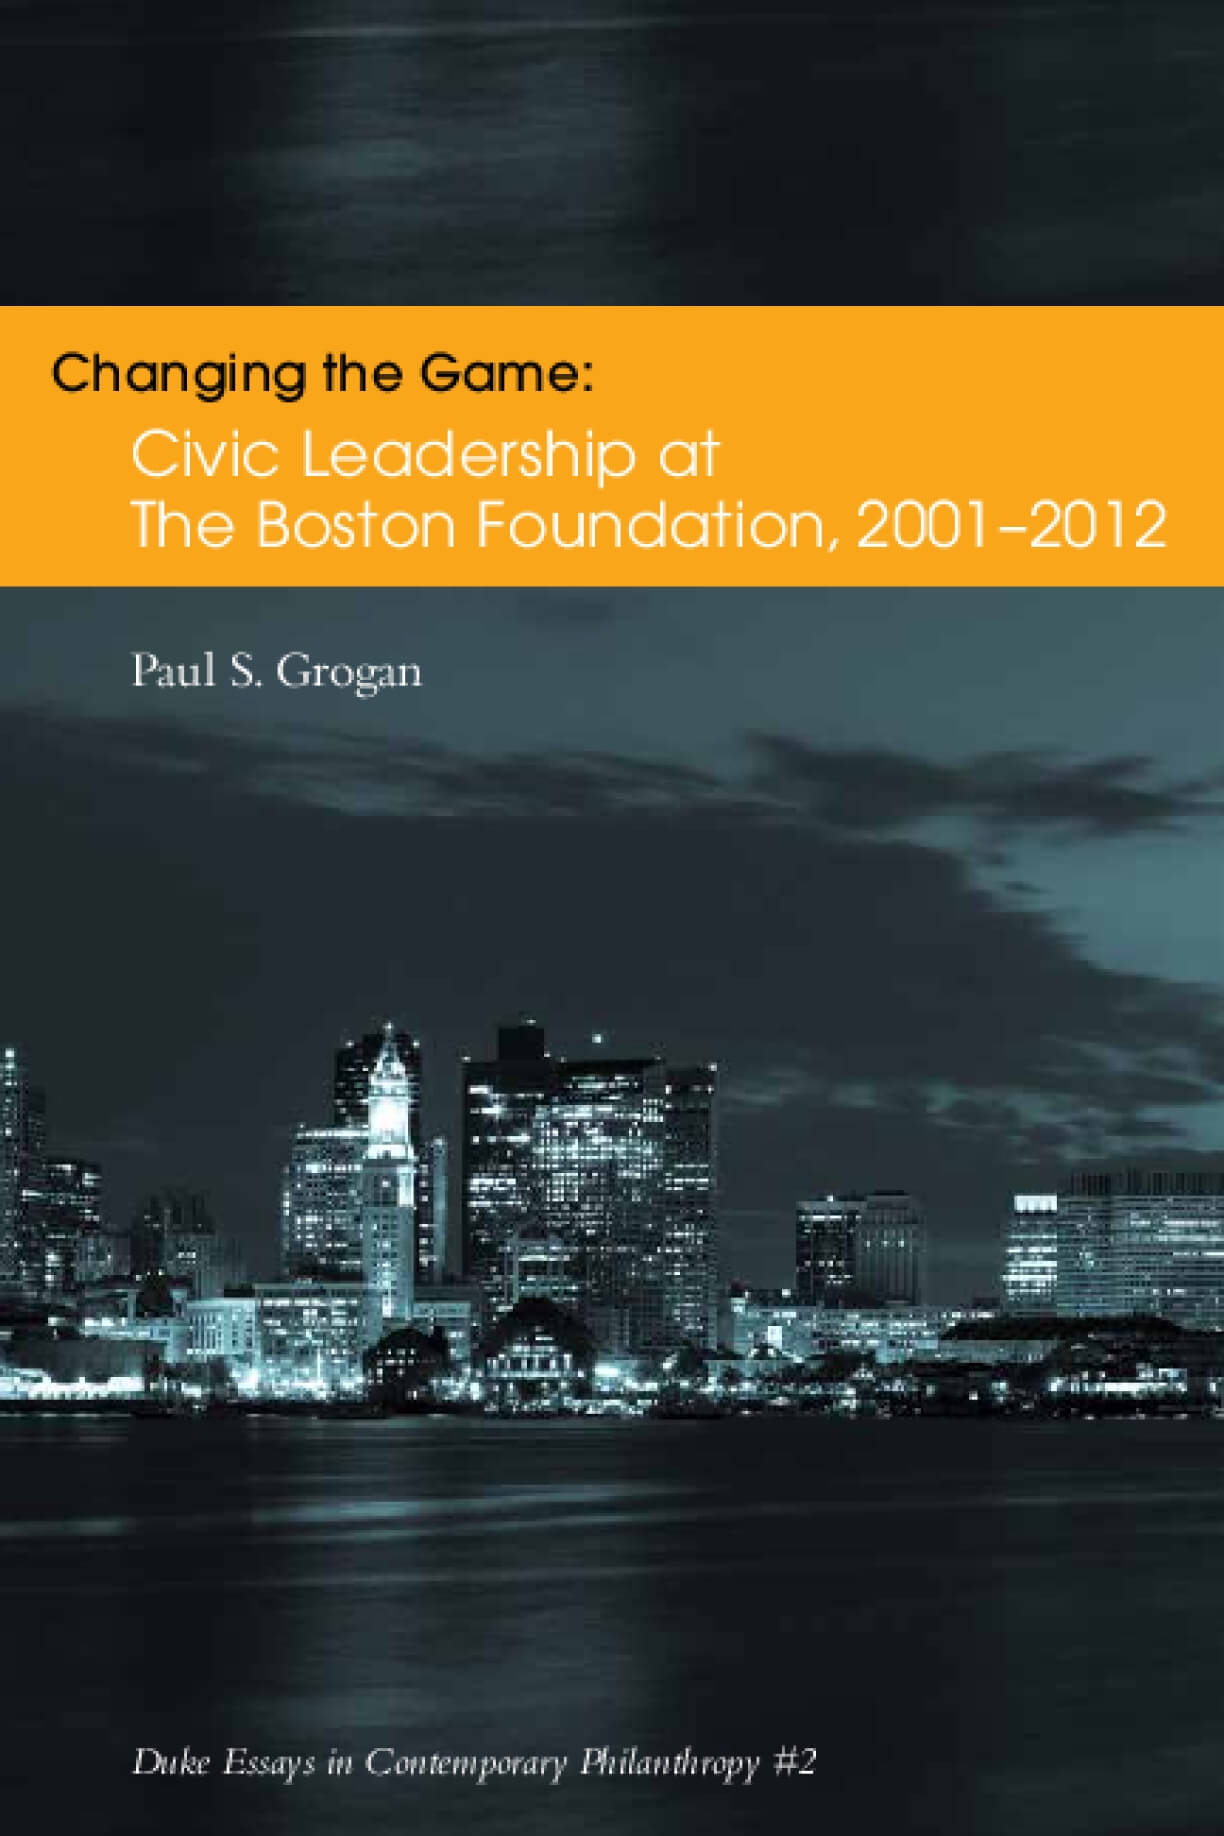 Changing the Game: Civic Leadership at The Boston Foundation 2001-2012